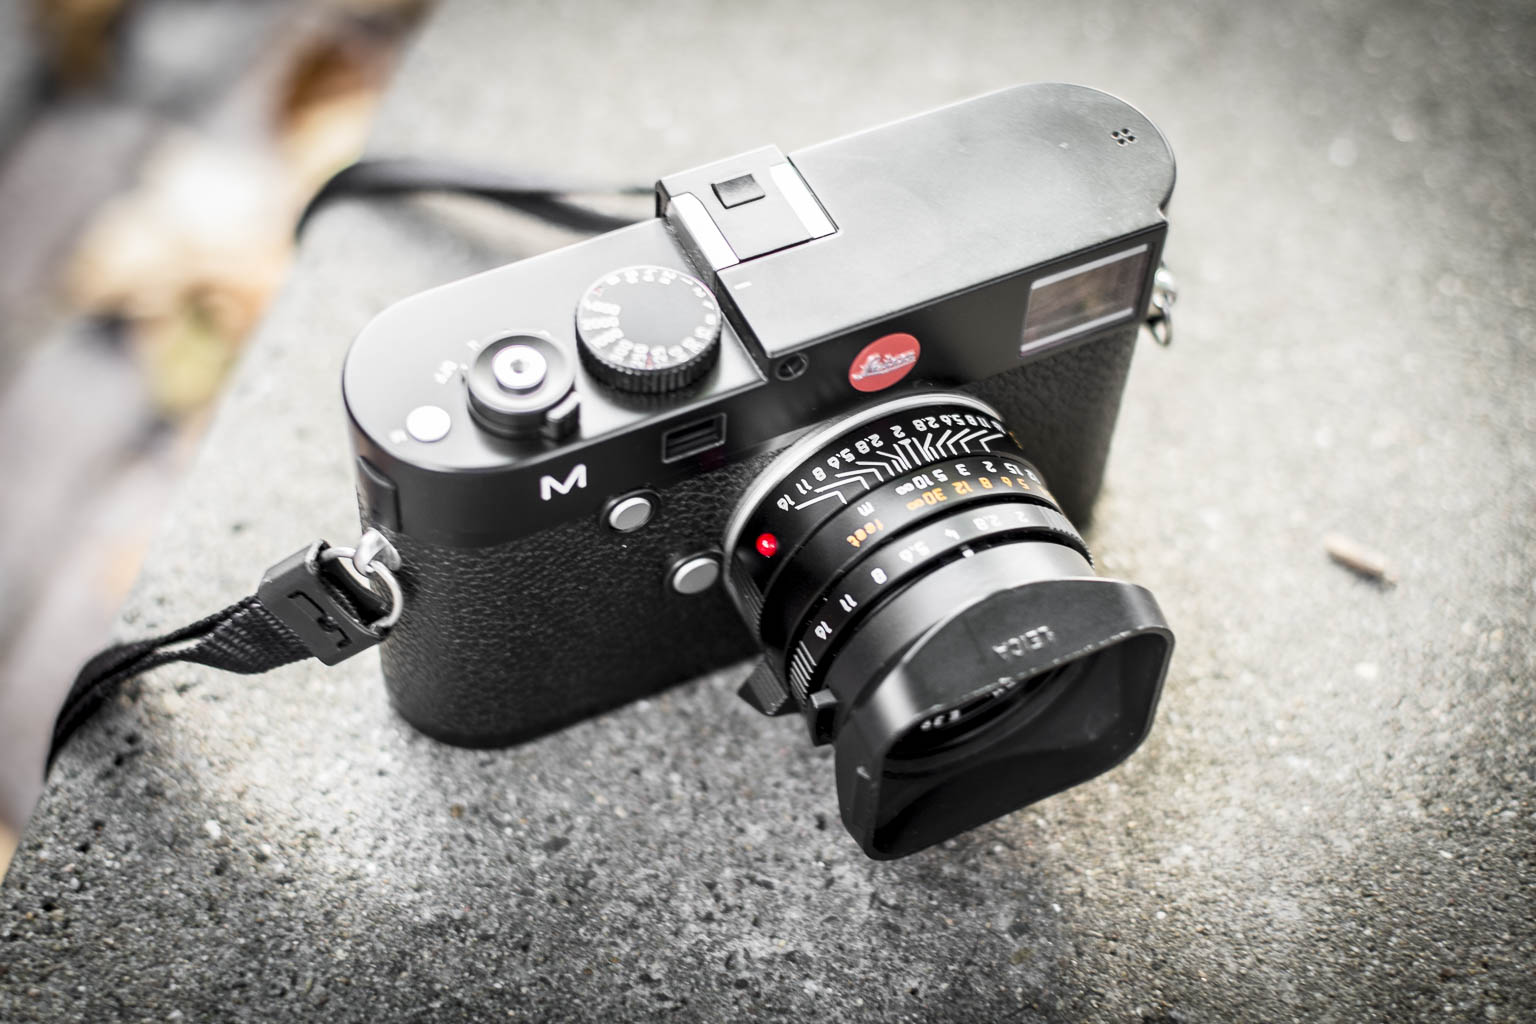 Leica M type 240 with summicron 35